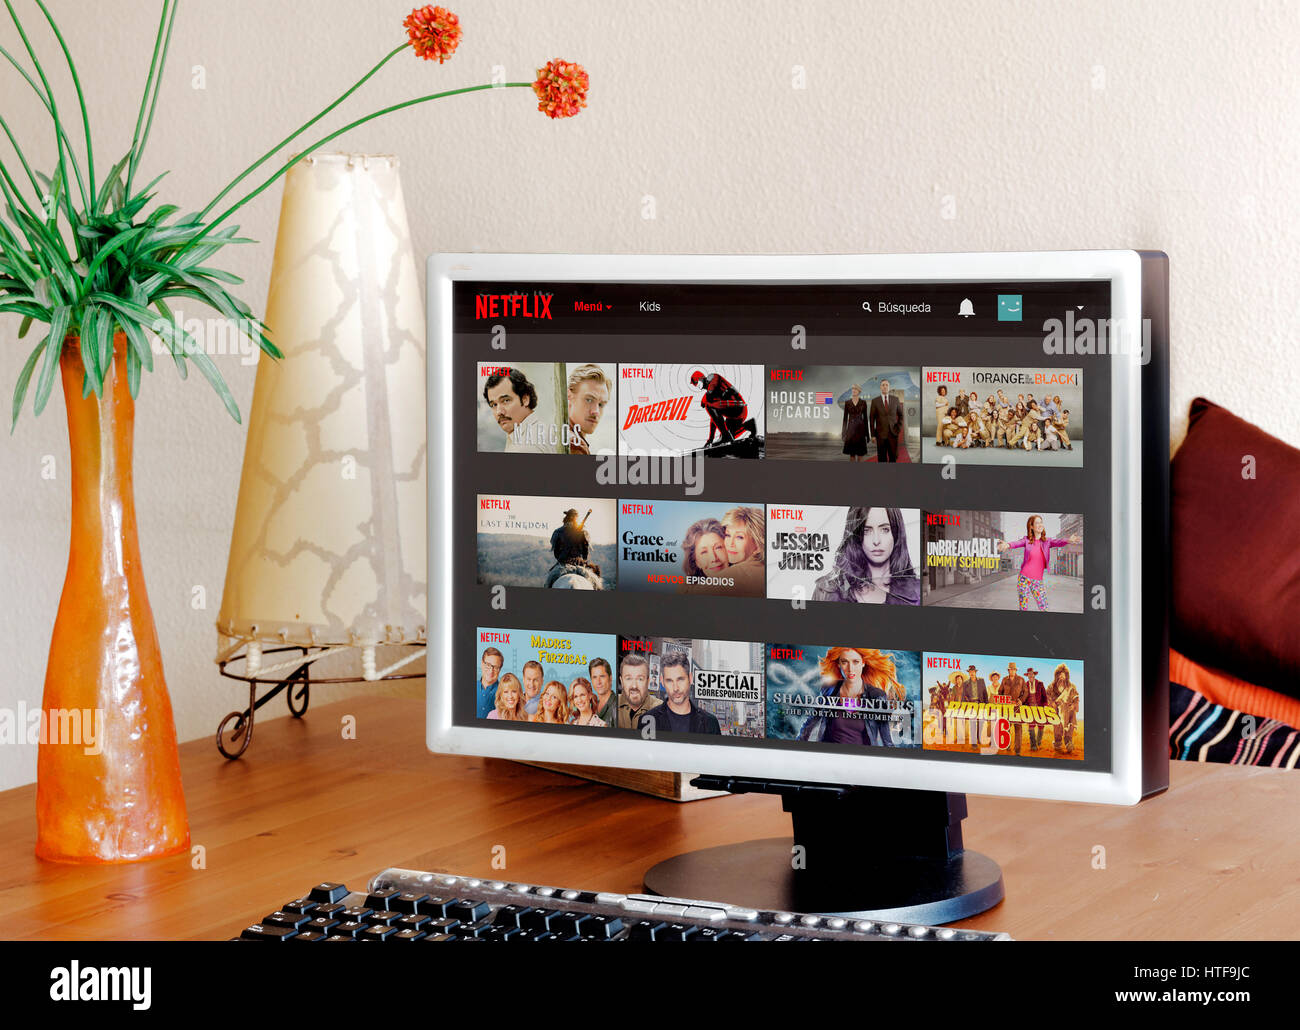 Netflix in the computer screen - Stock Image